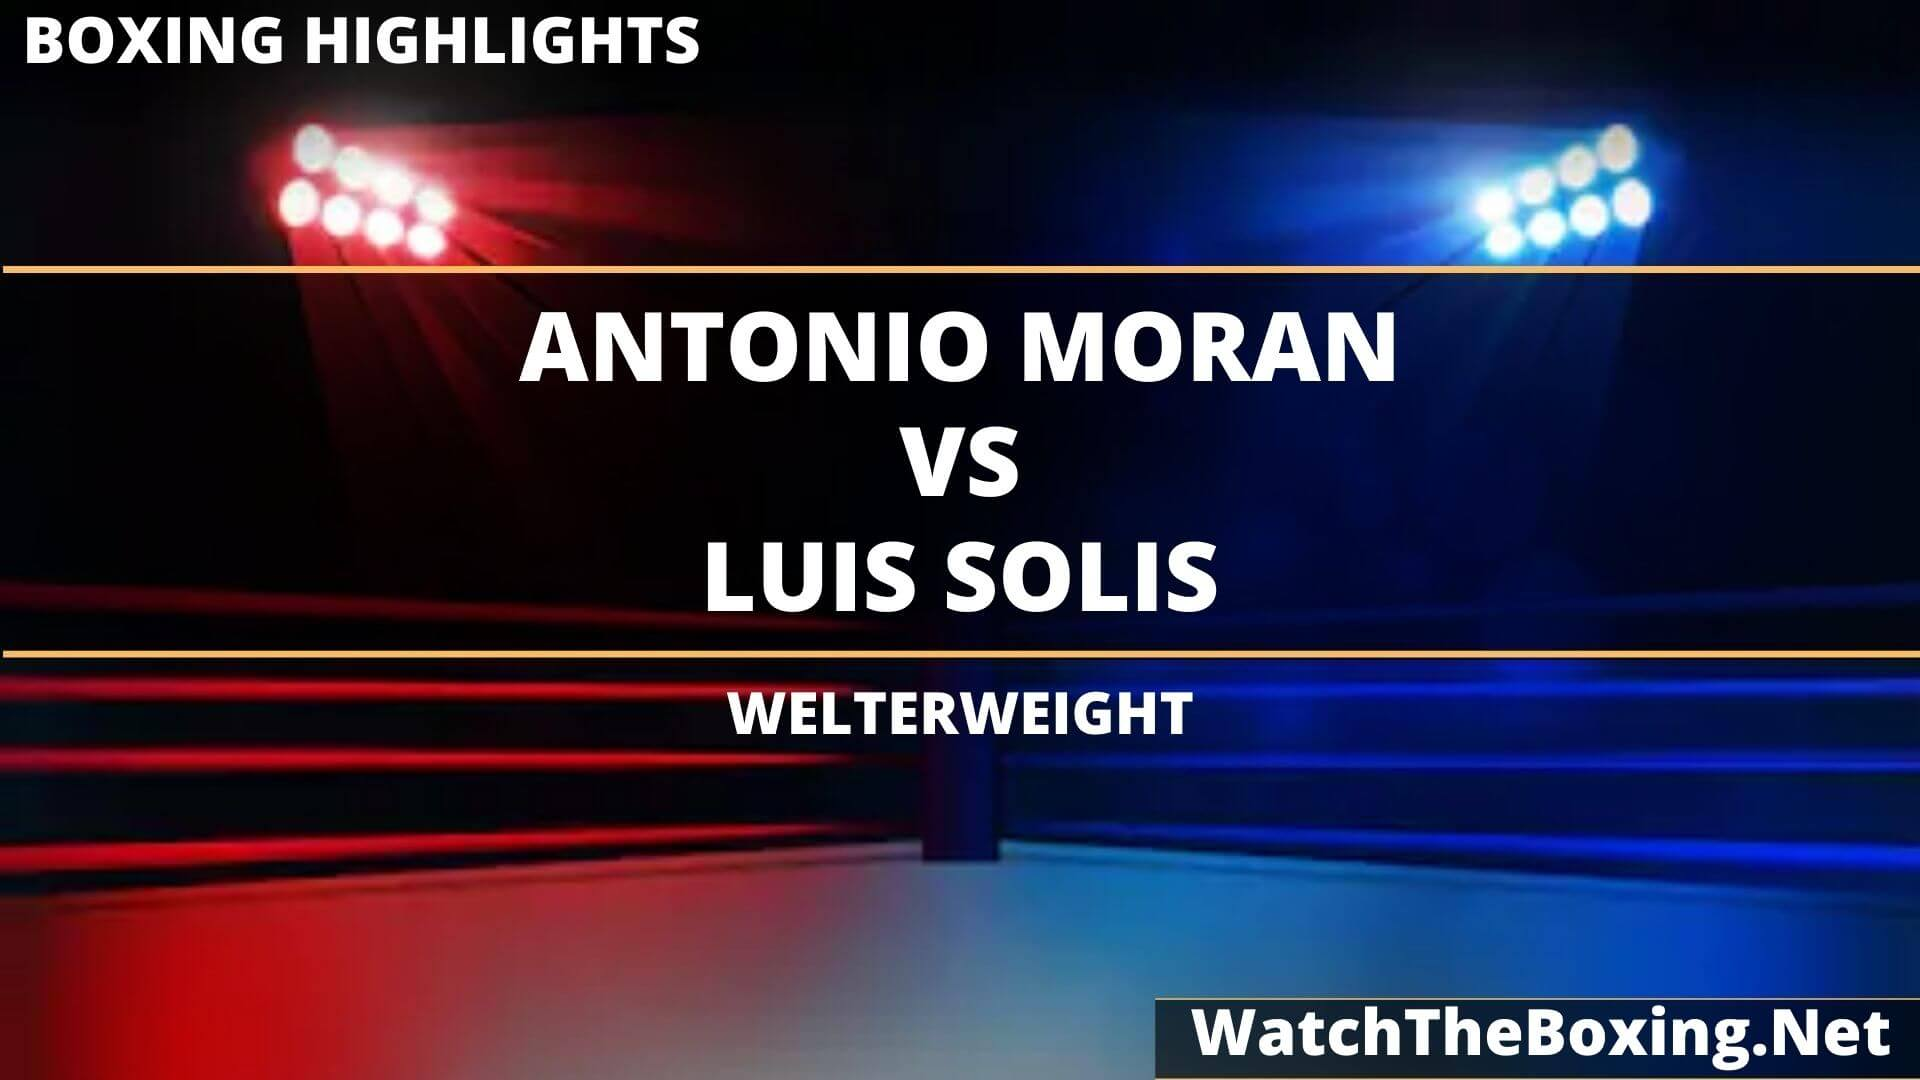 Antonio Moran Vs Luis Solis Highlights 2020 Welterweight